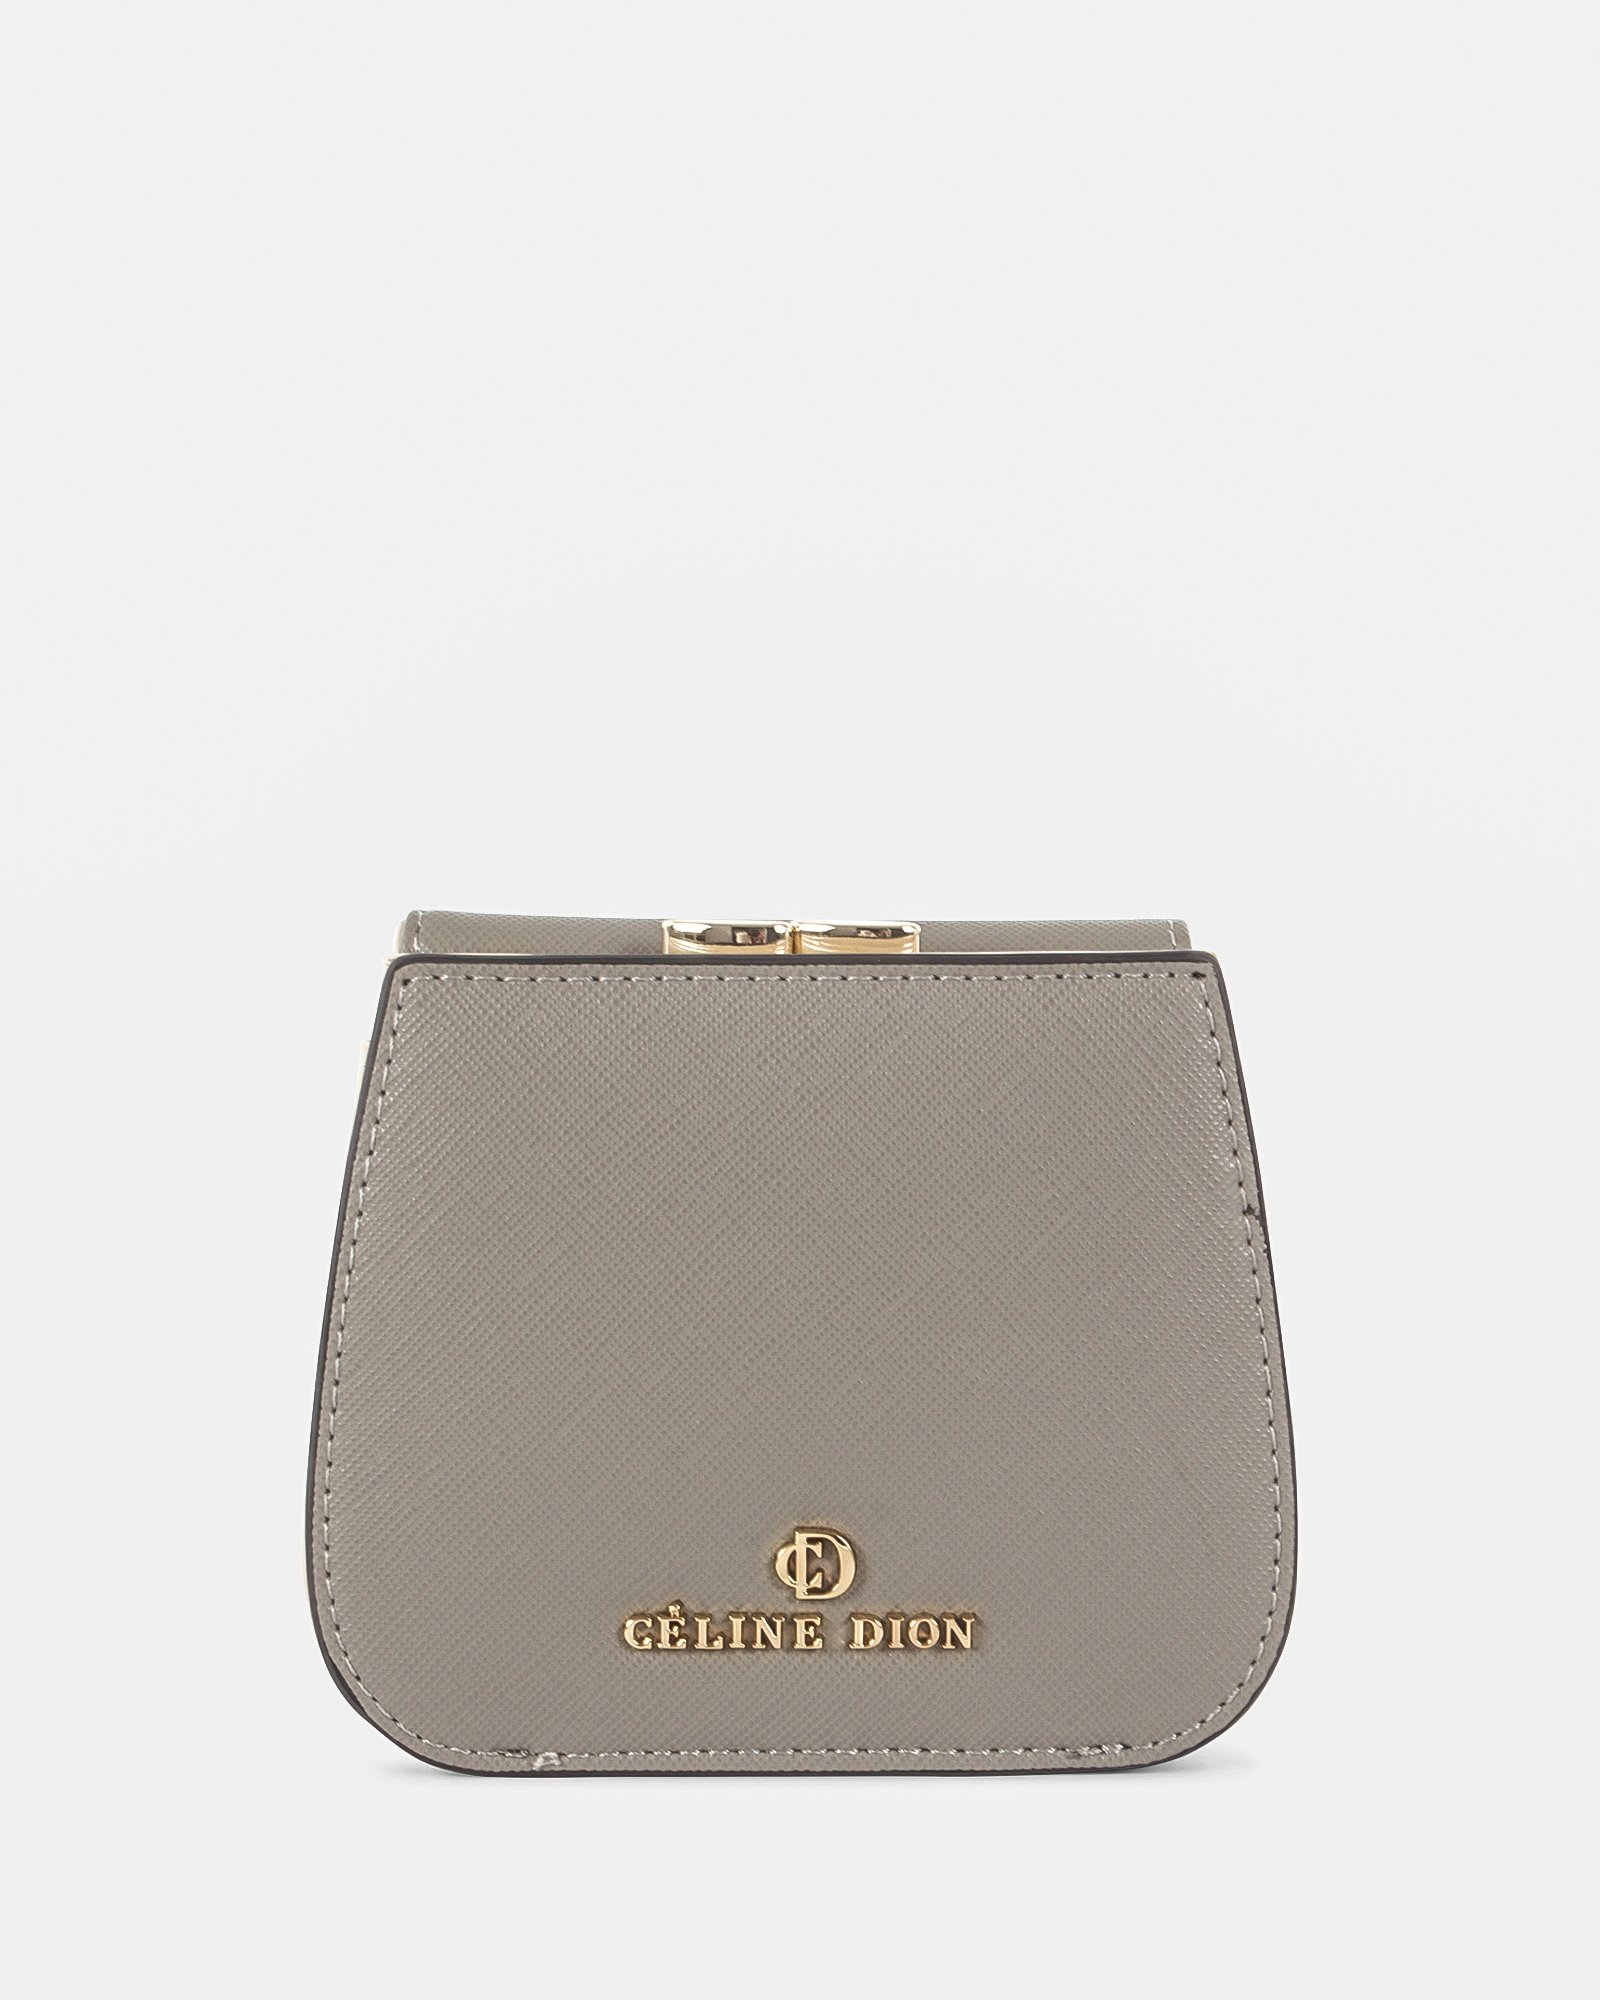 GRAZIOSO - Wallet Small rounded wallet with integrated coin clasp - Grey - Céline Dion - Zoom